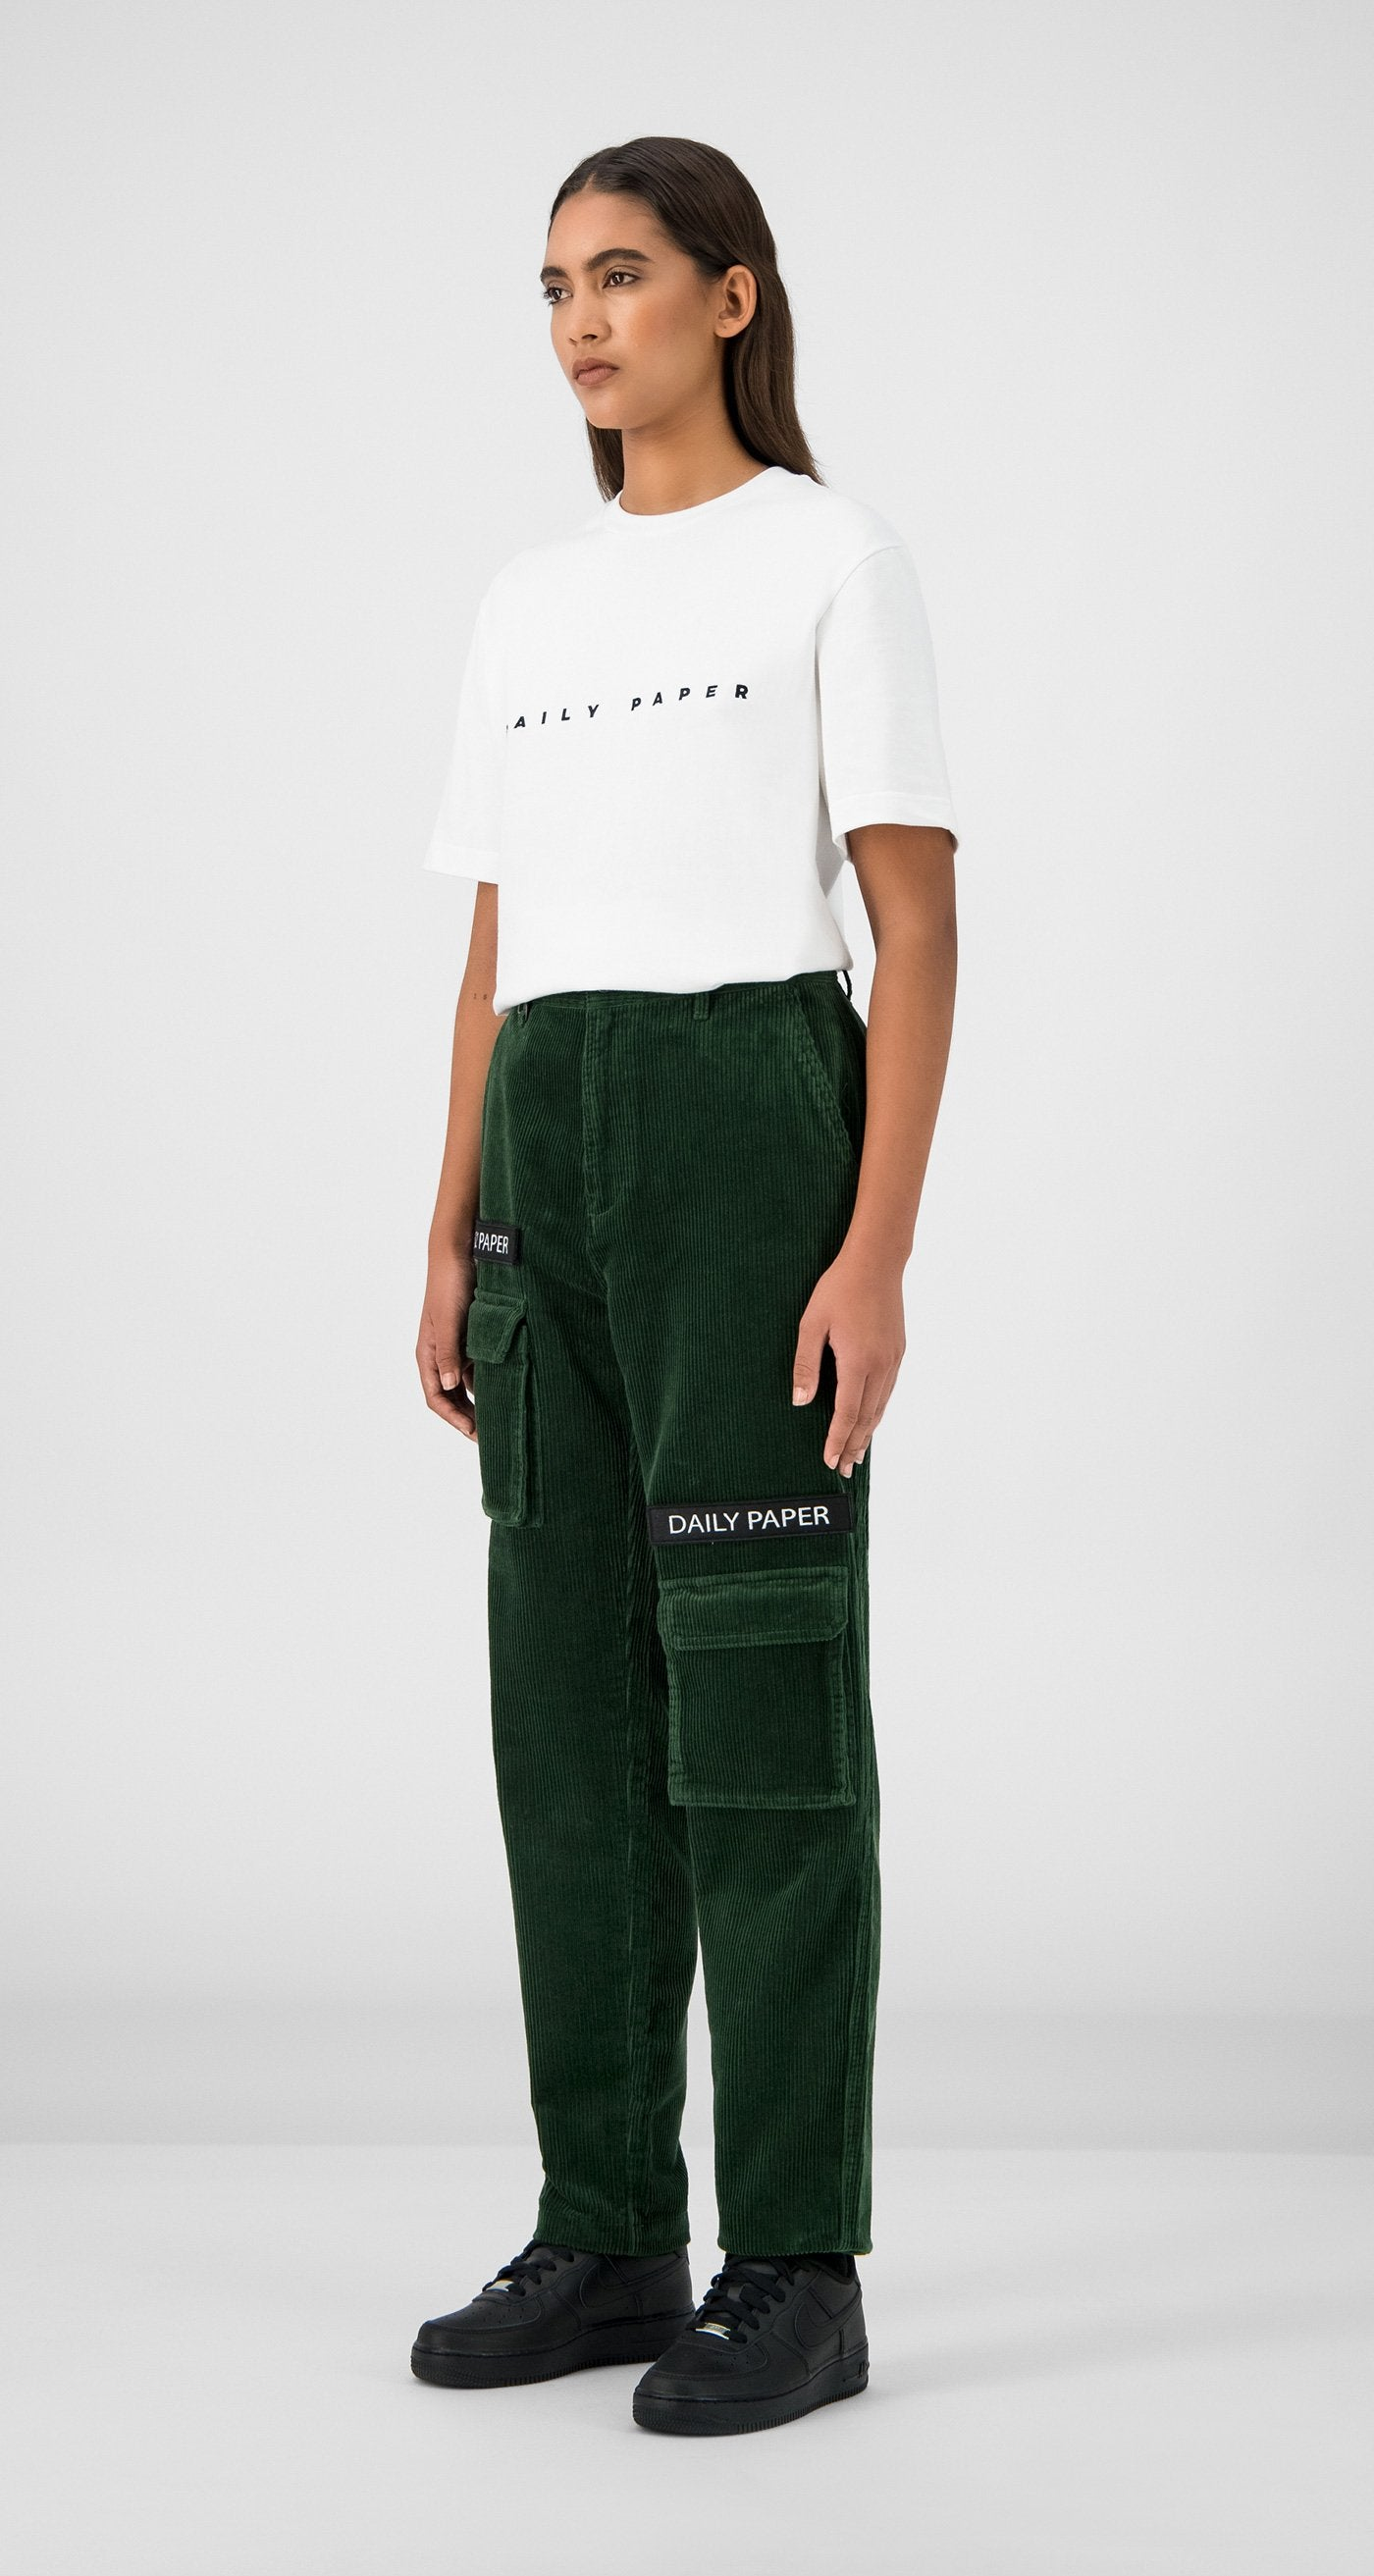 Daily Paper - Green Corduroy Cargo Pants Women